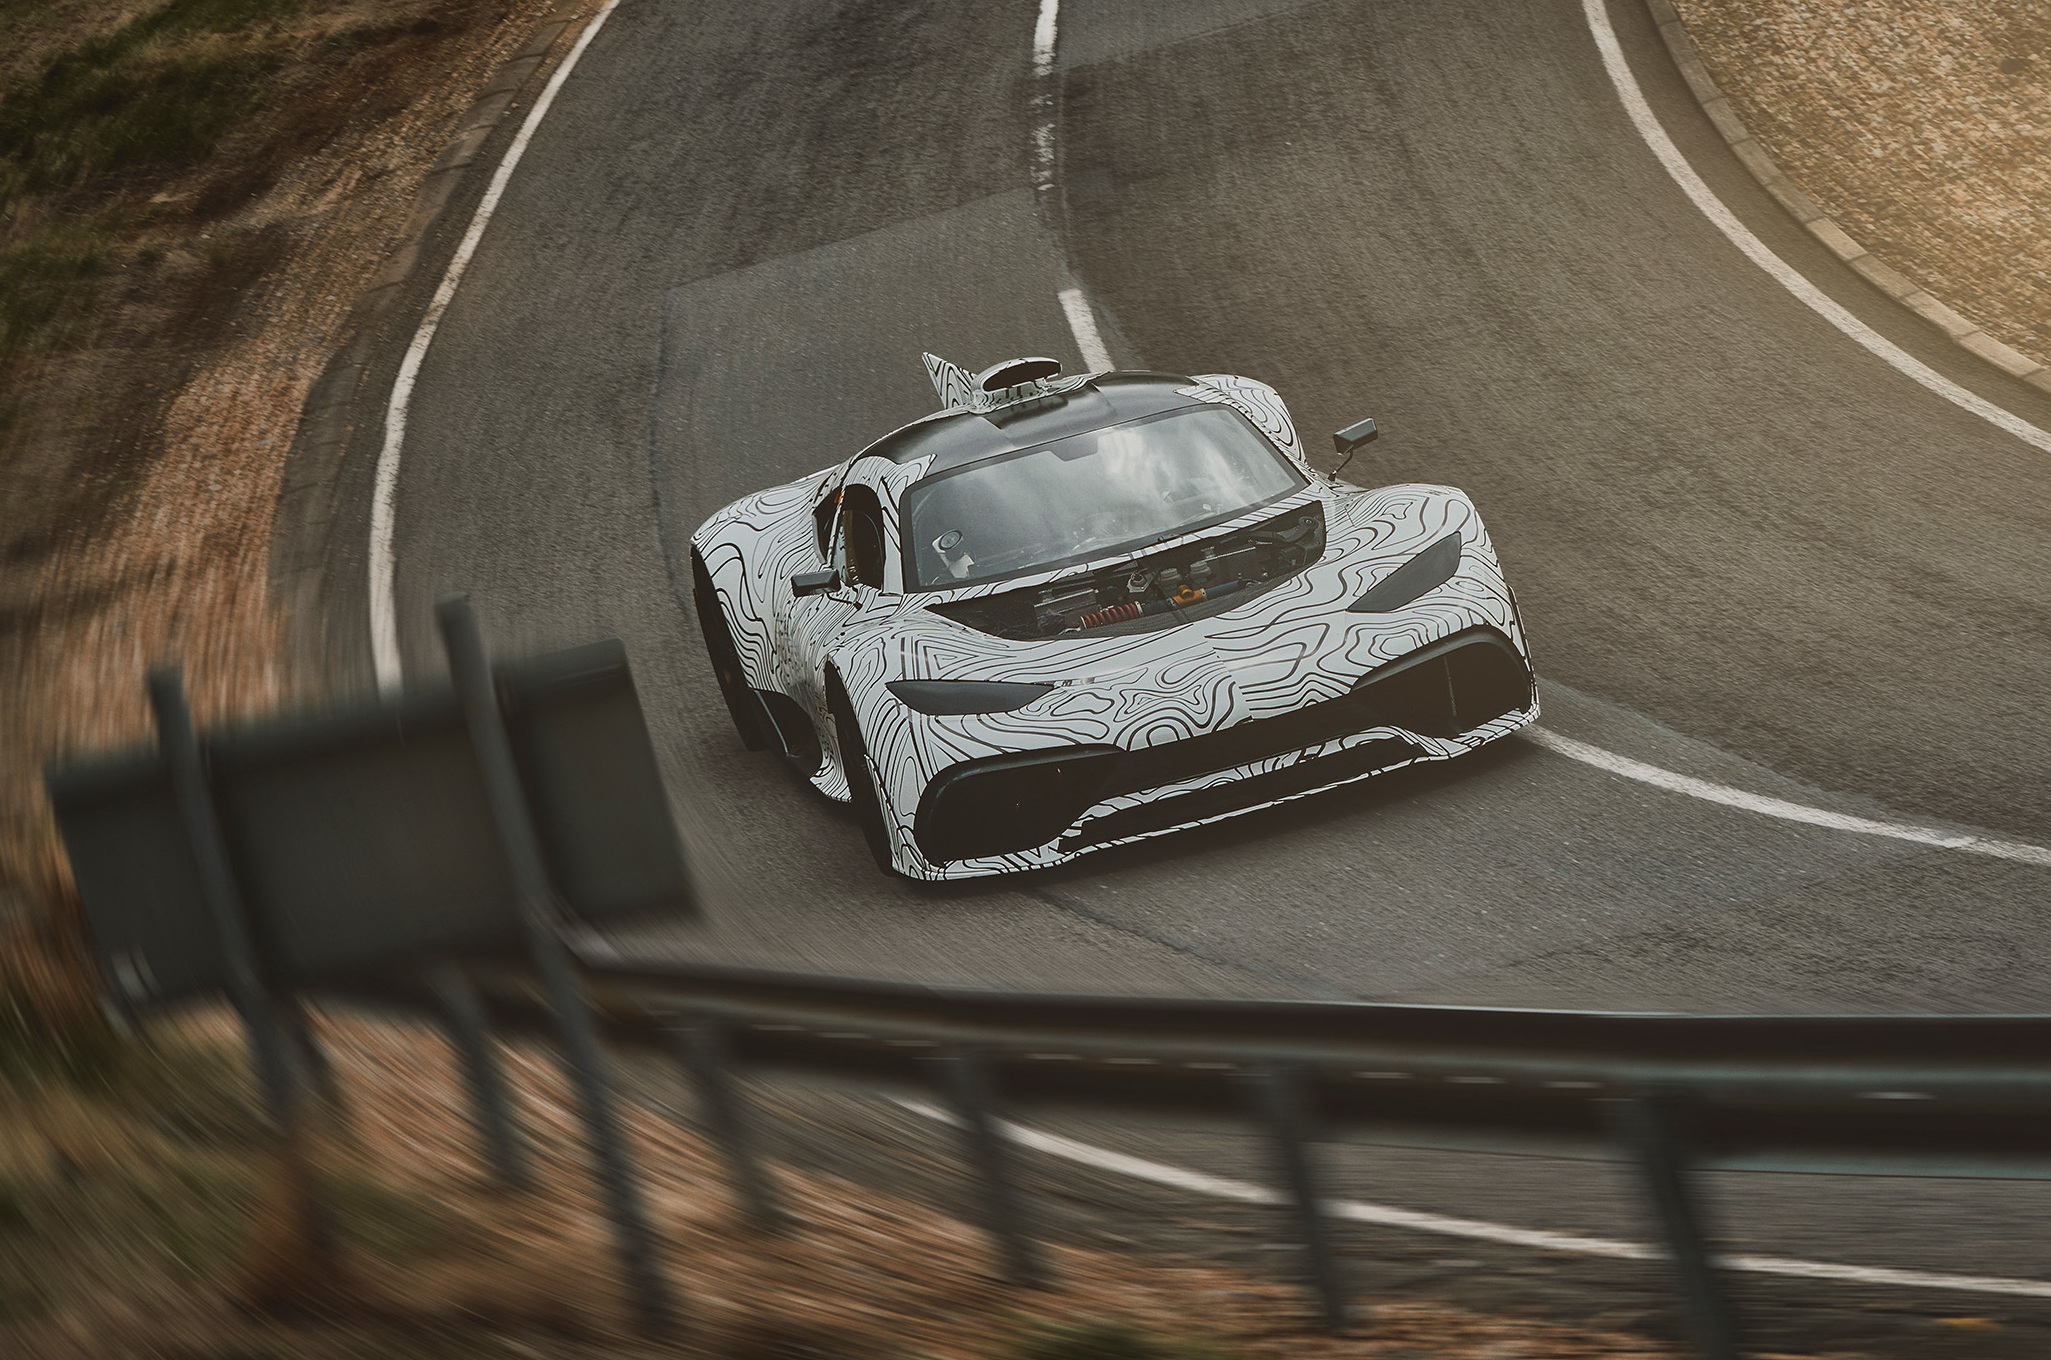 Mercedes-AMG Project ONE: Prototyp auf Erprobung Mercedes-AMG Project ONE: Prototype Testing